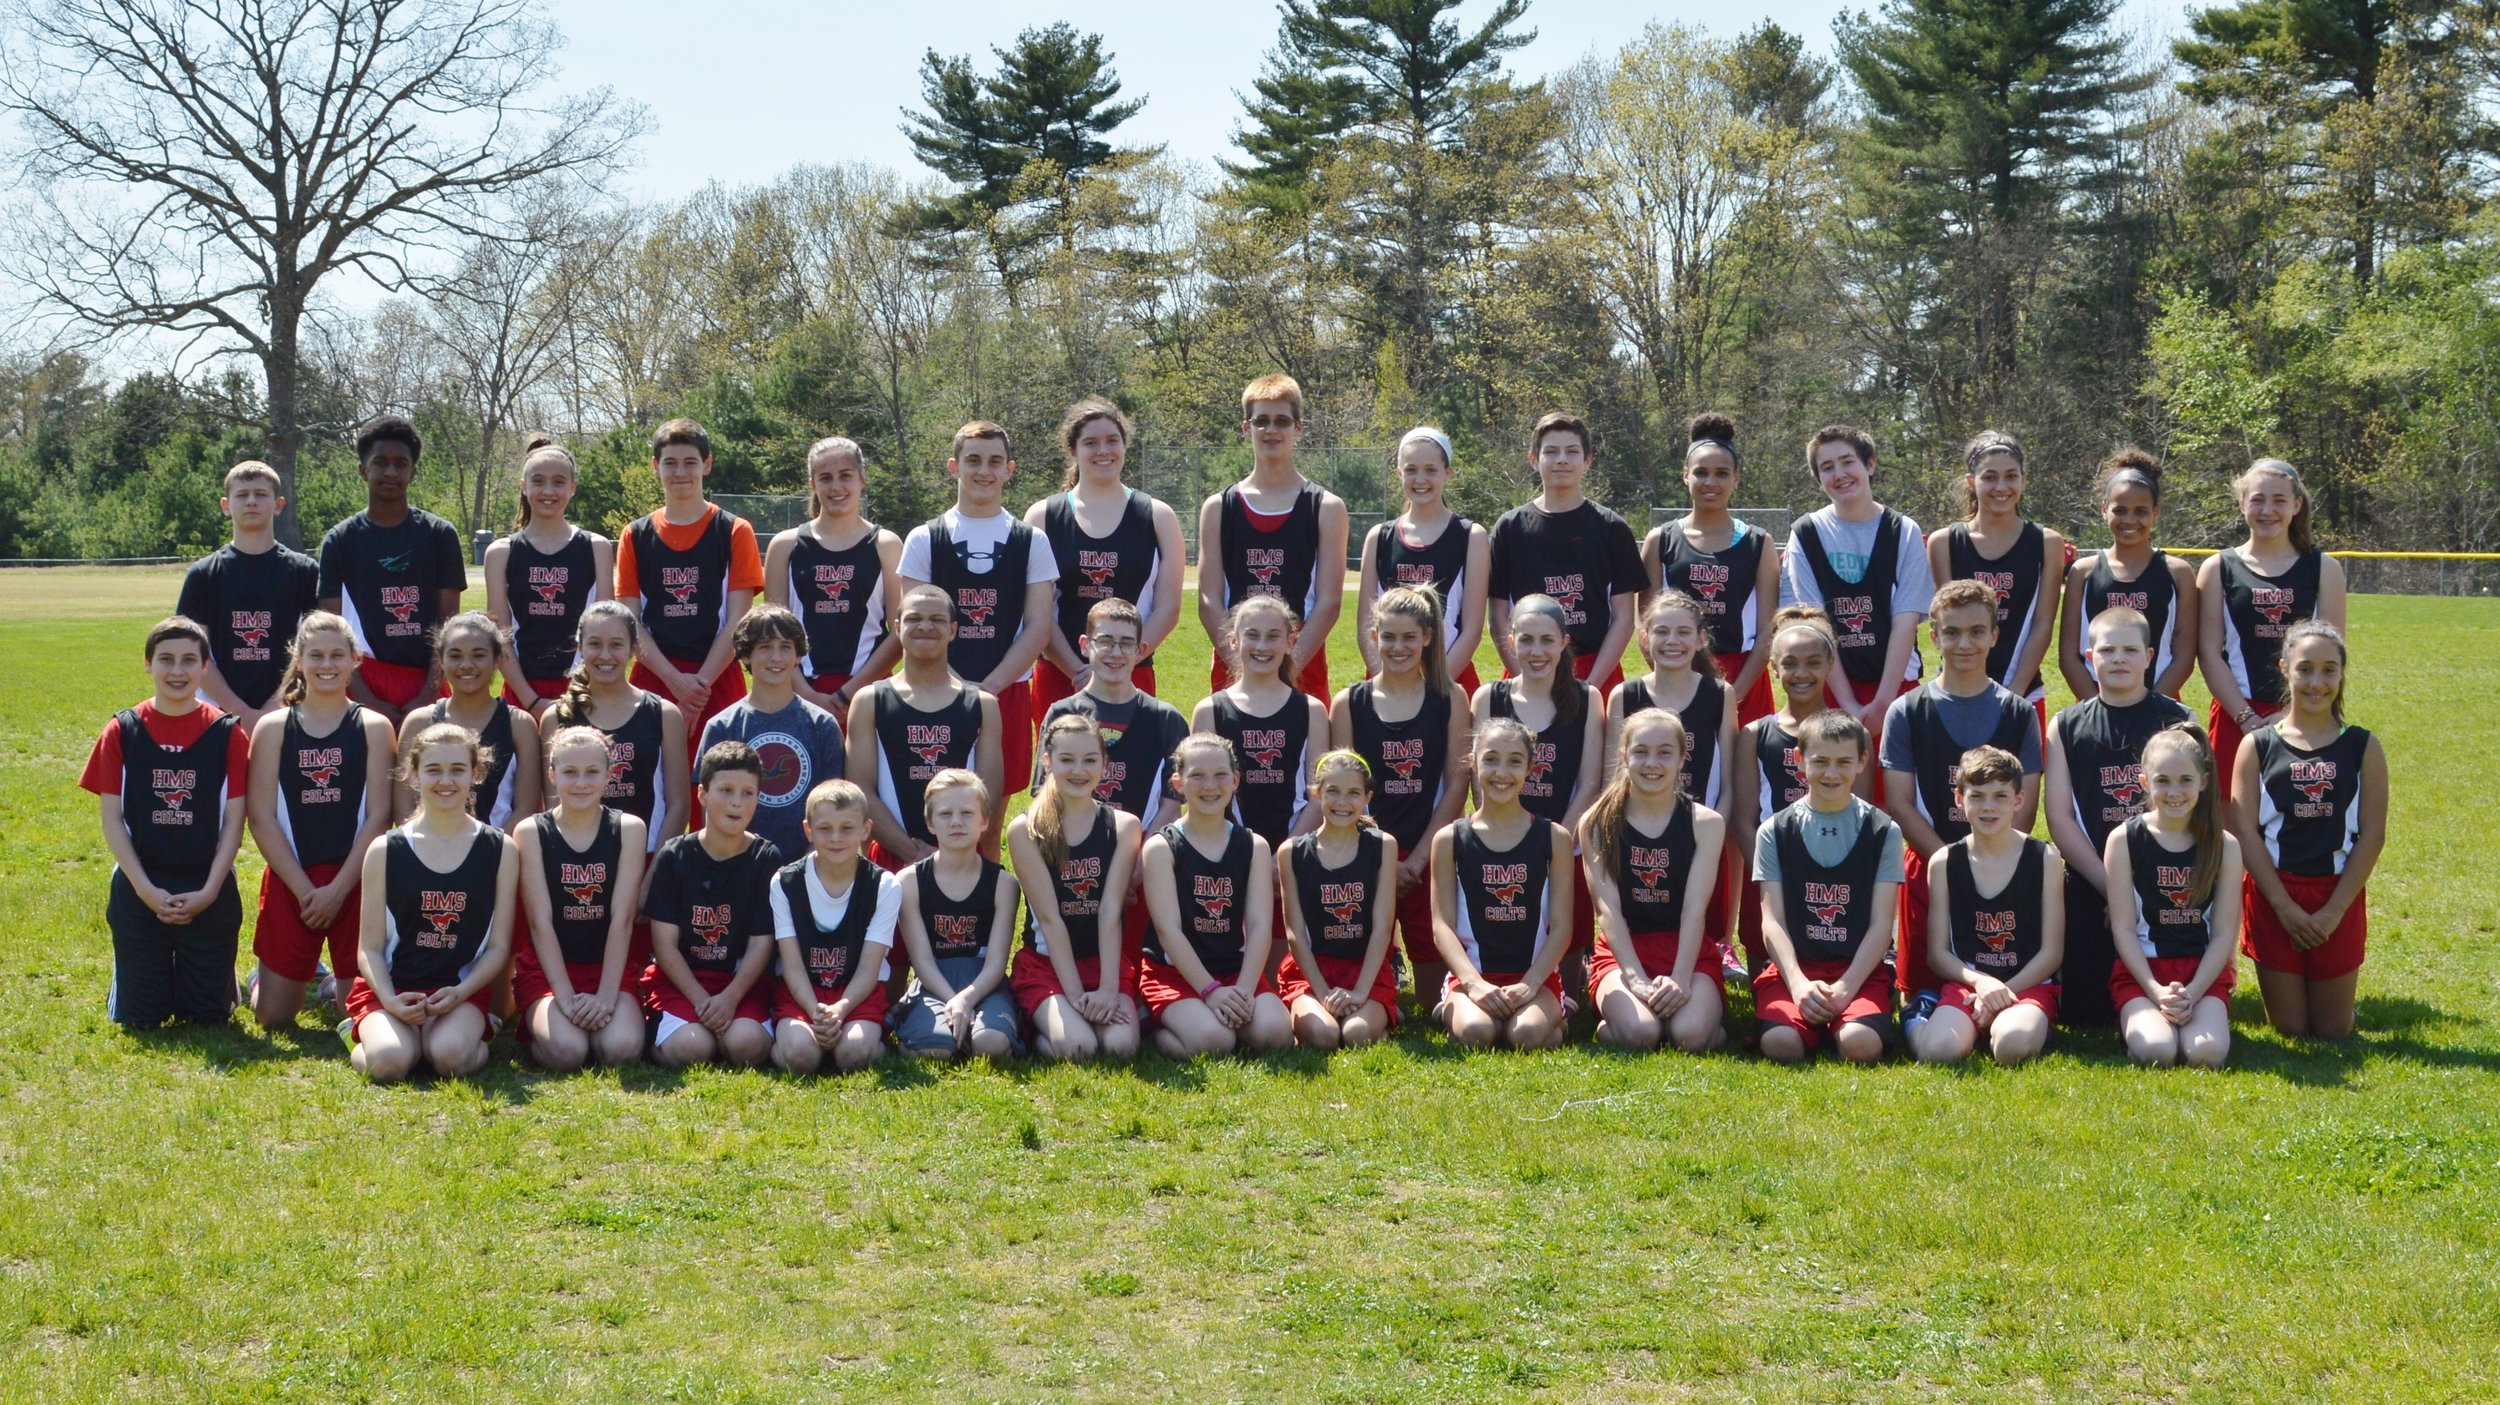 Boys and Girls Track Pano.JPG